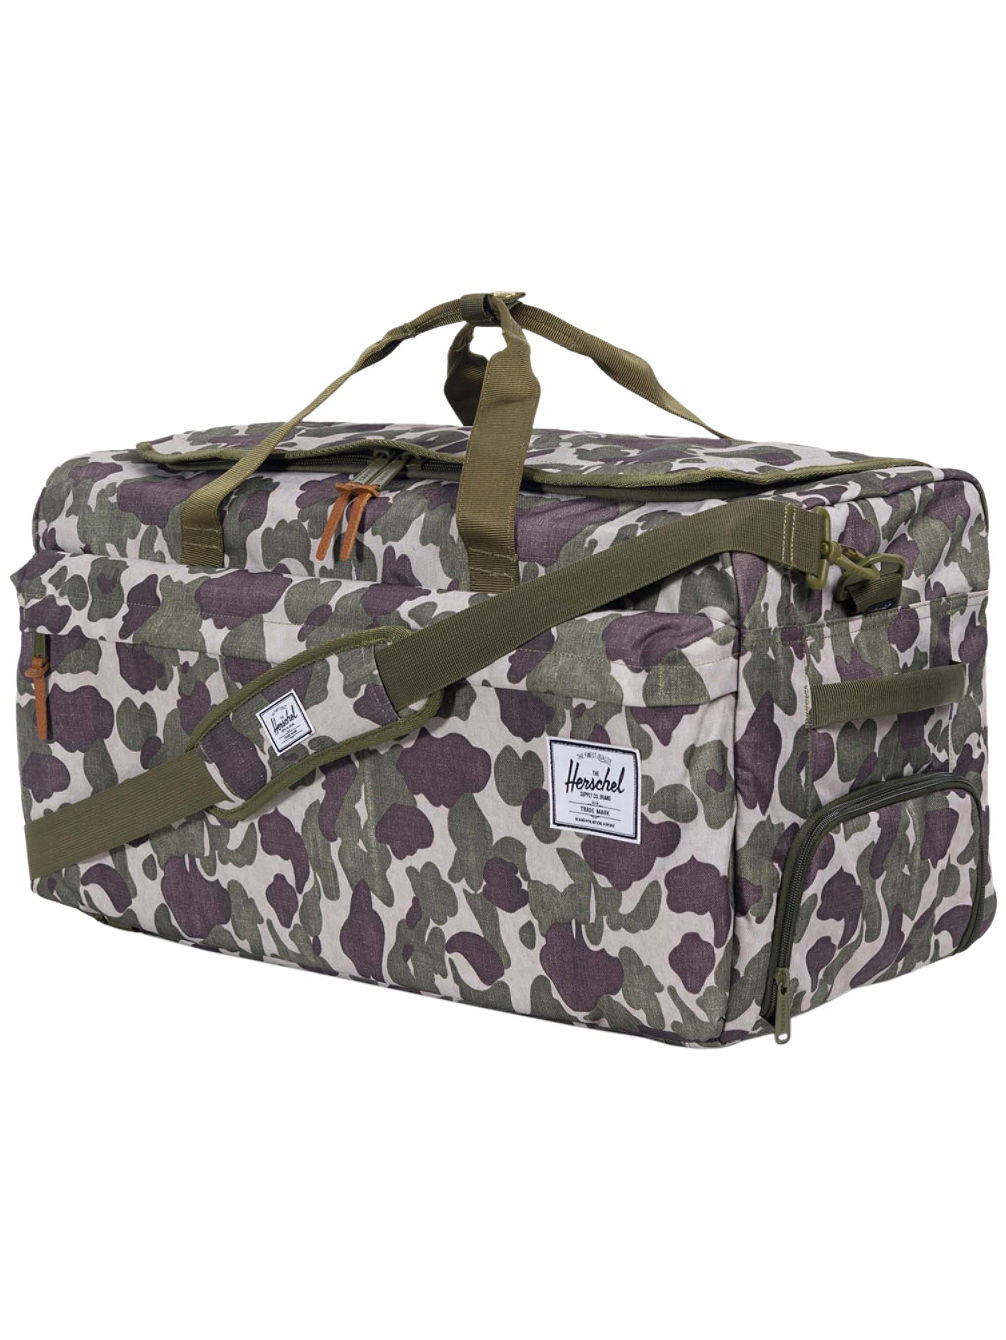 Outfitter Bag